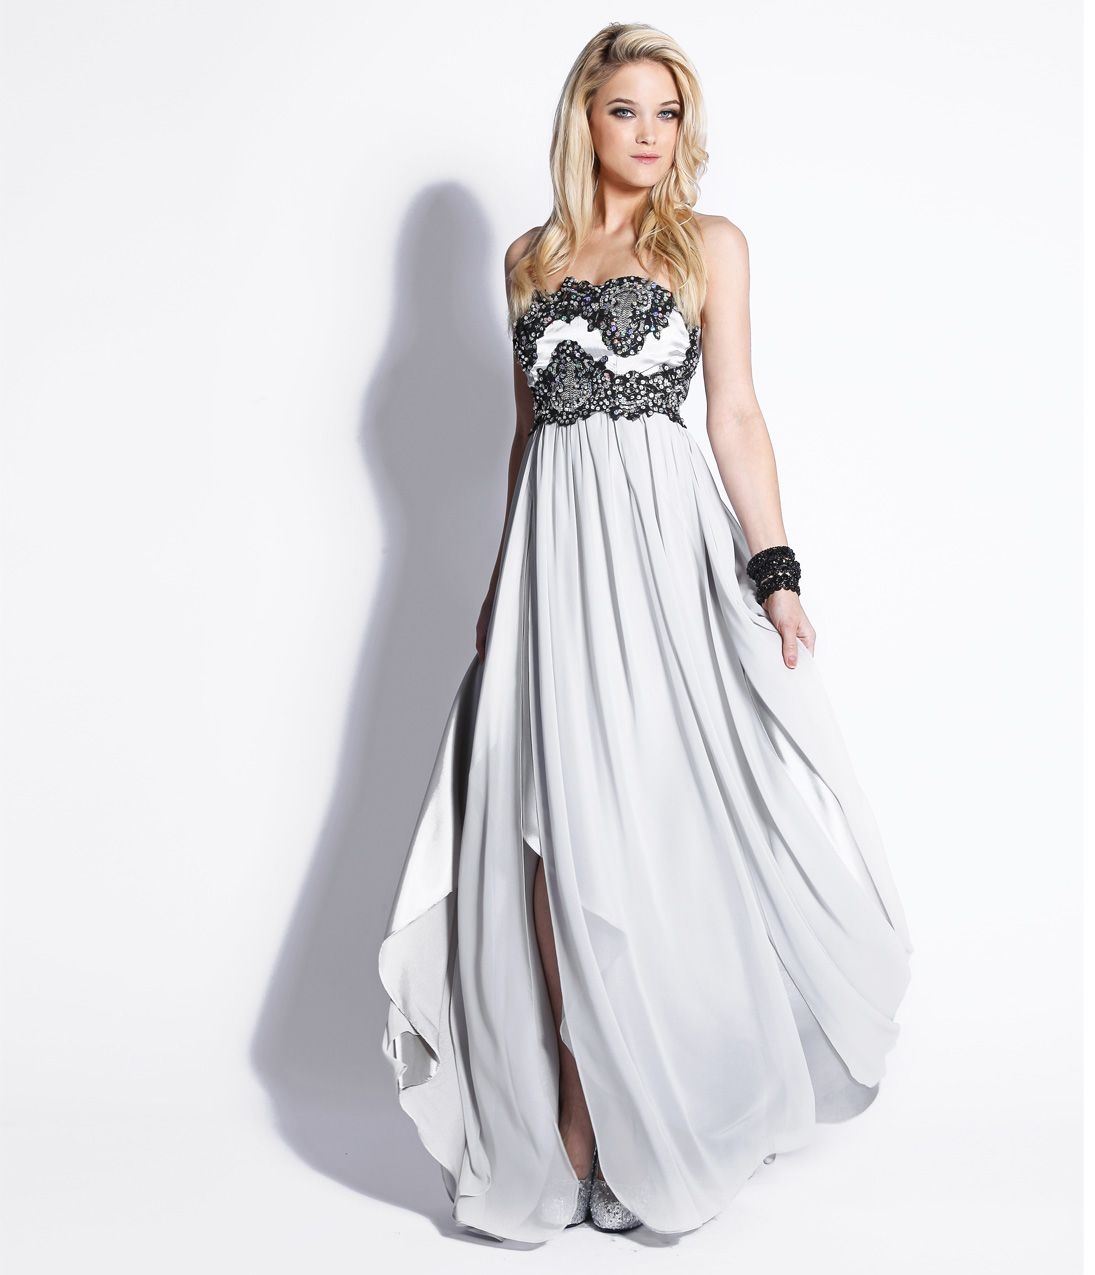 prom dresses silver u black embroidered chiffon strapless